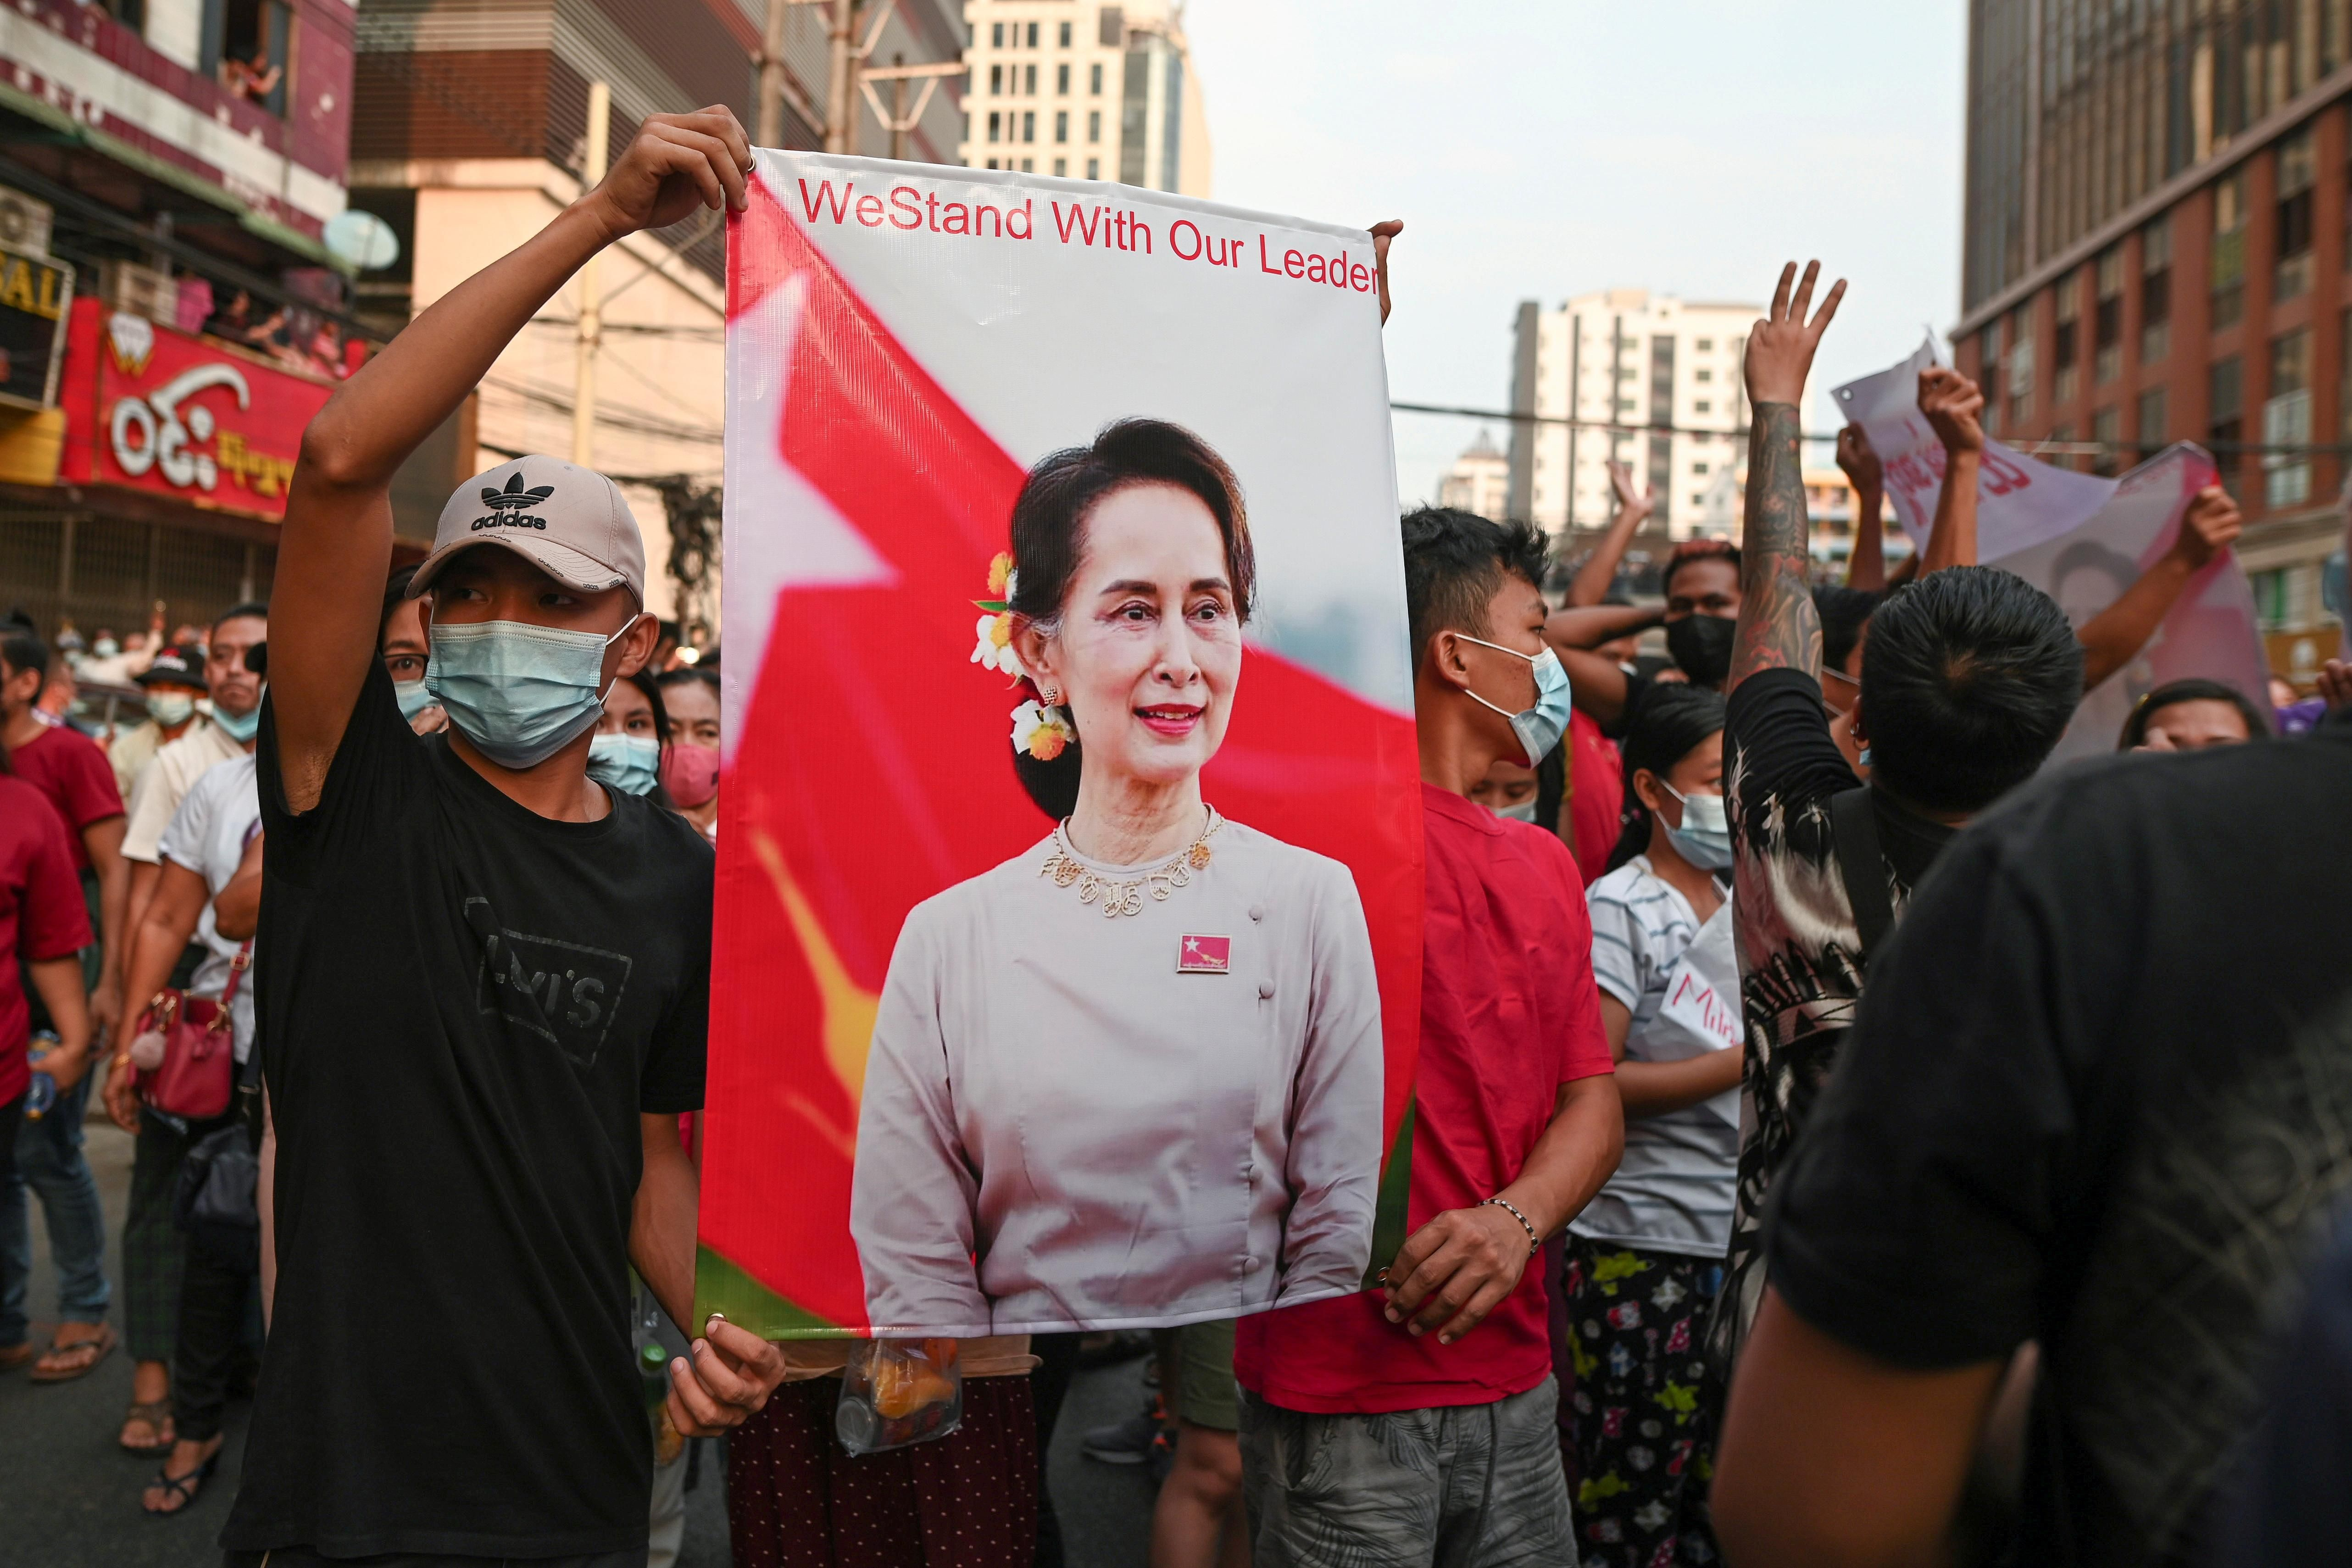 Demonstrators protest against the military coup and demand the release of elected leader Aung San Suu Kyi, in Yangon, Myanmar, February 6, 2021.